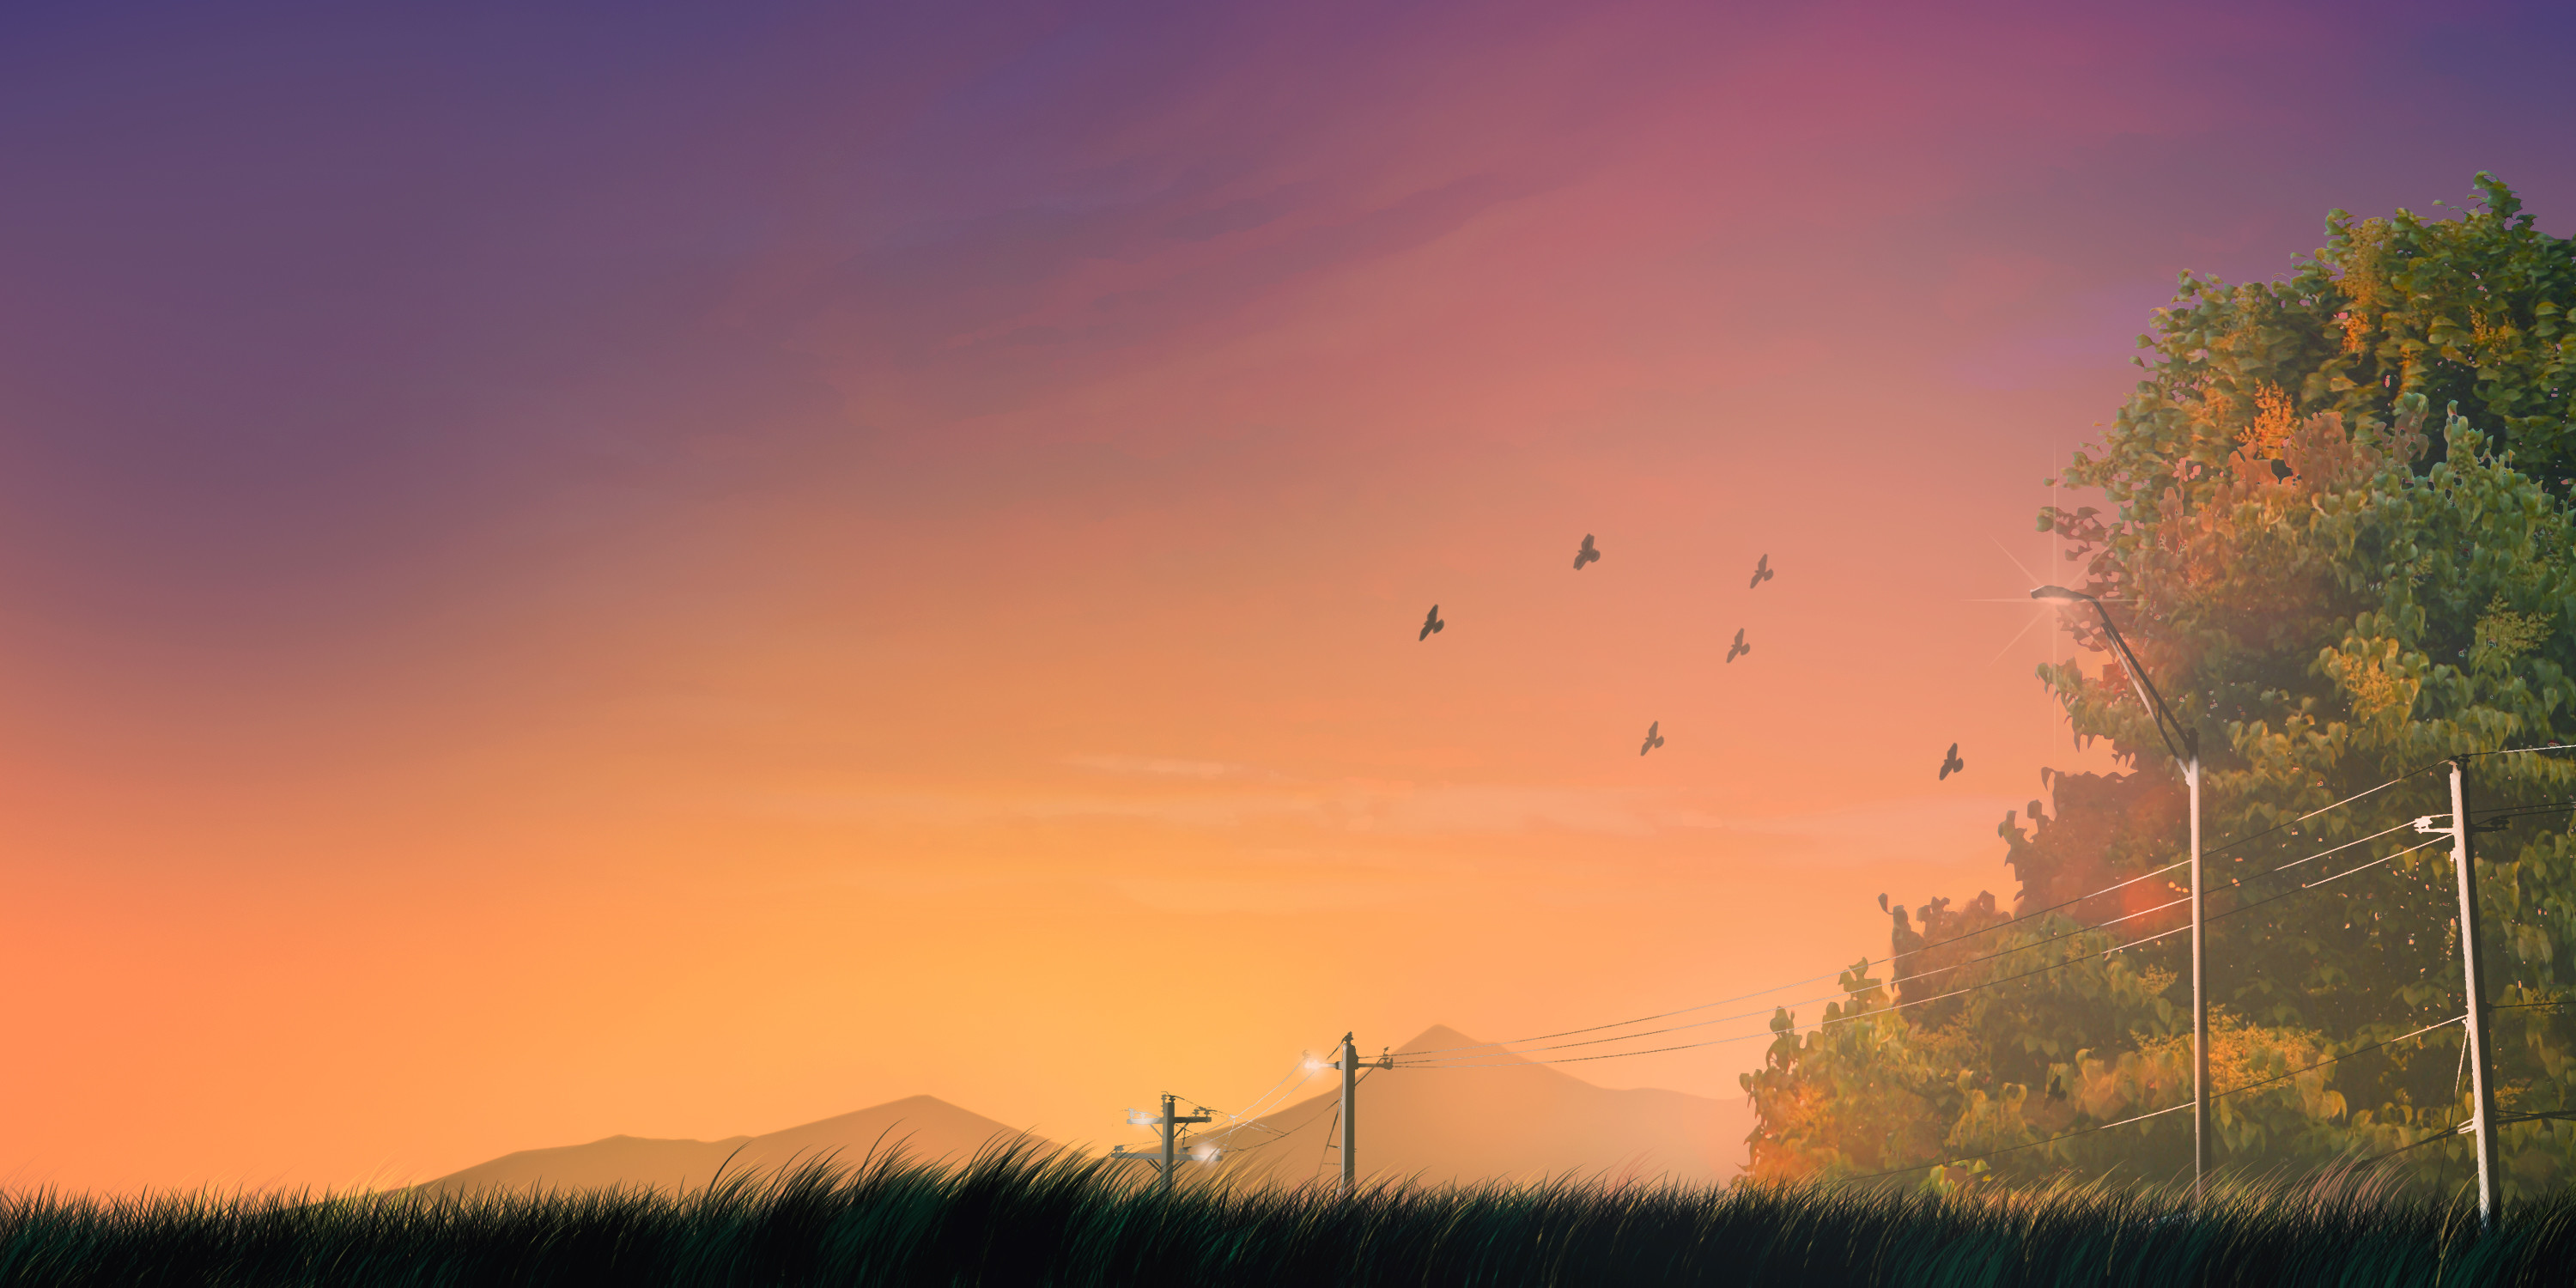 3000x1500 ... Anime background - landscape final vers. by JikanPulvis